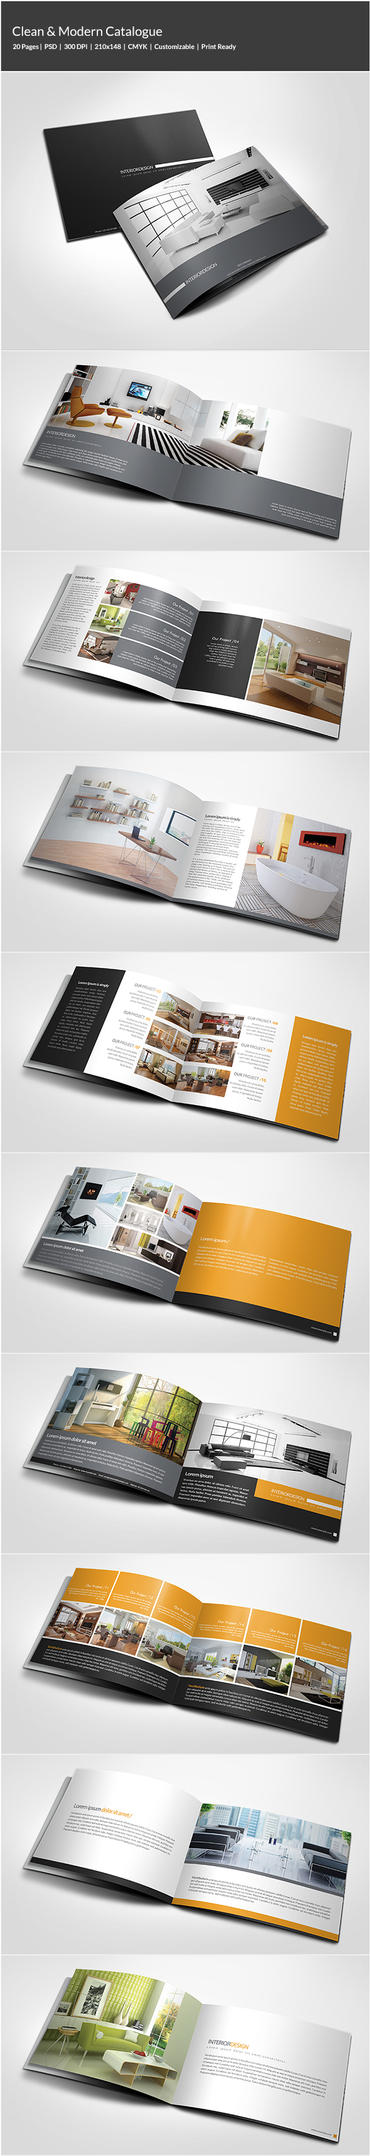 Clean / Modern Catalogue by shapshapy